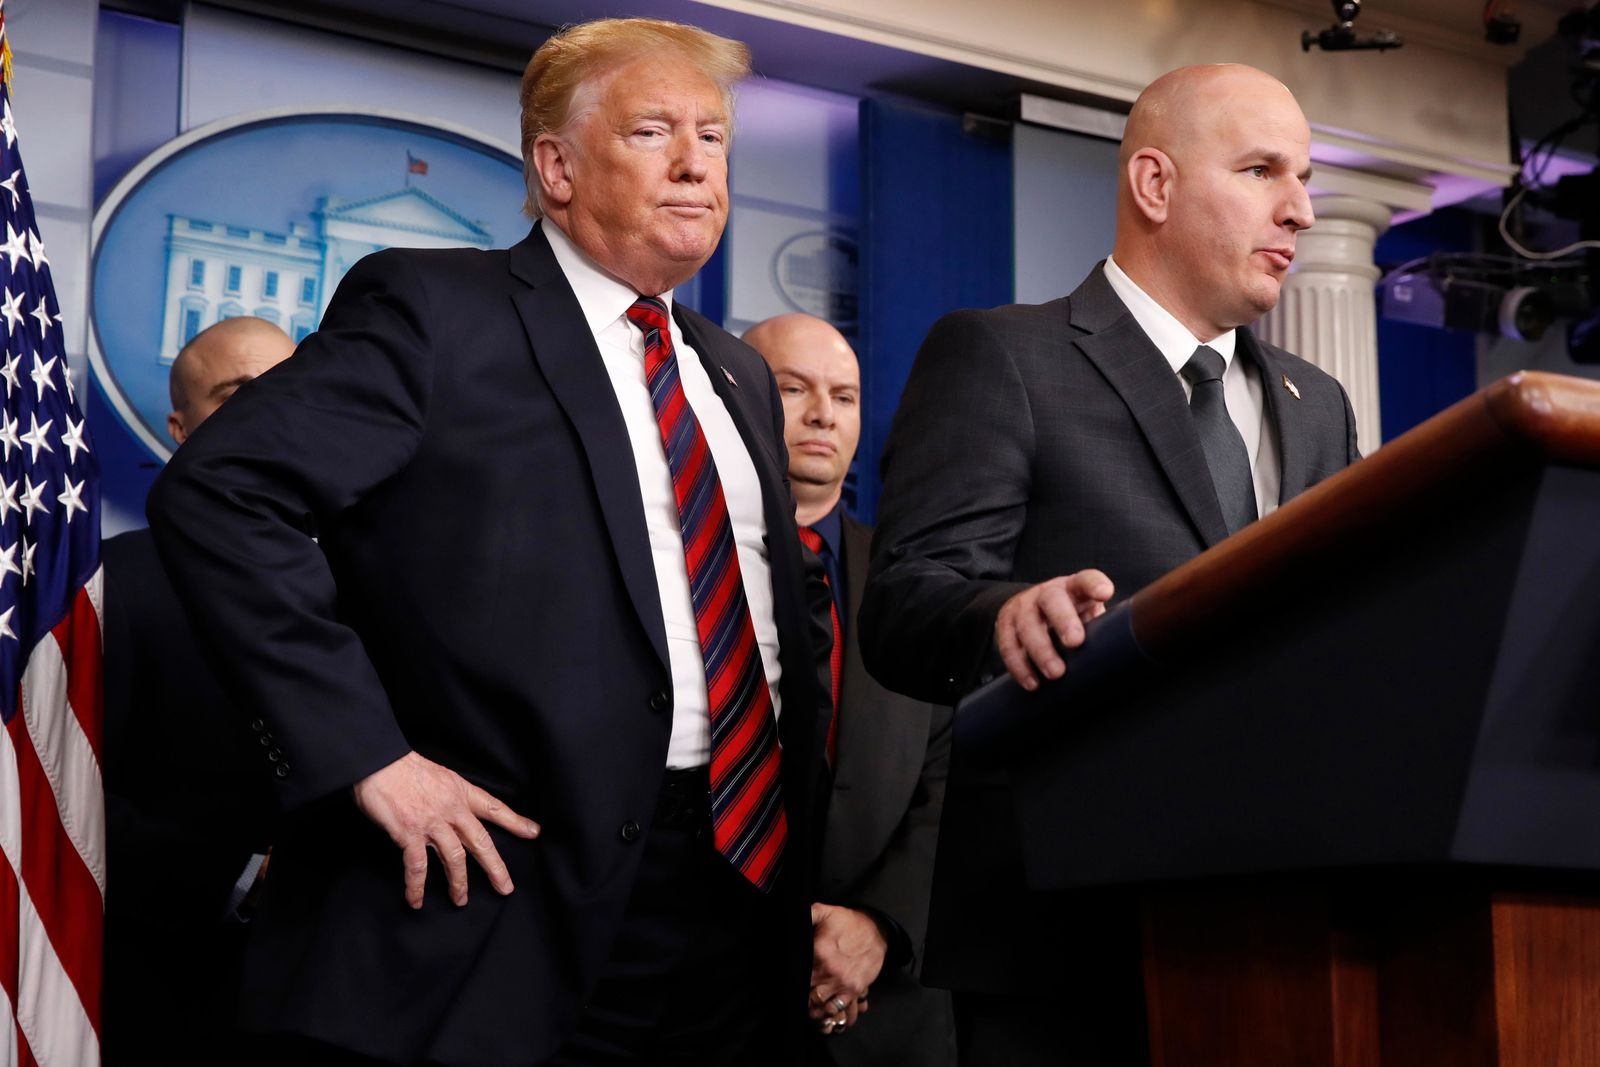 FILE - In this Jan. 3, 2019, file photo, President Donald Trump, left, listens as Brandon Judd, president of the National Border Patrol Council, talks about border security after making a surprise visit to the press briefing room of the White House in Washington. (AP Photo/Jacquelyn Martin, File)